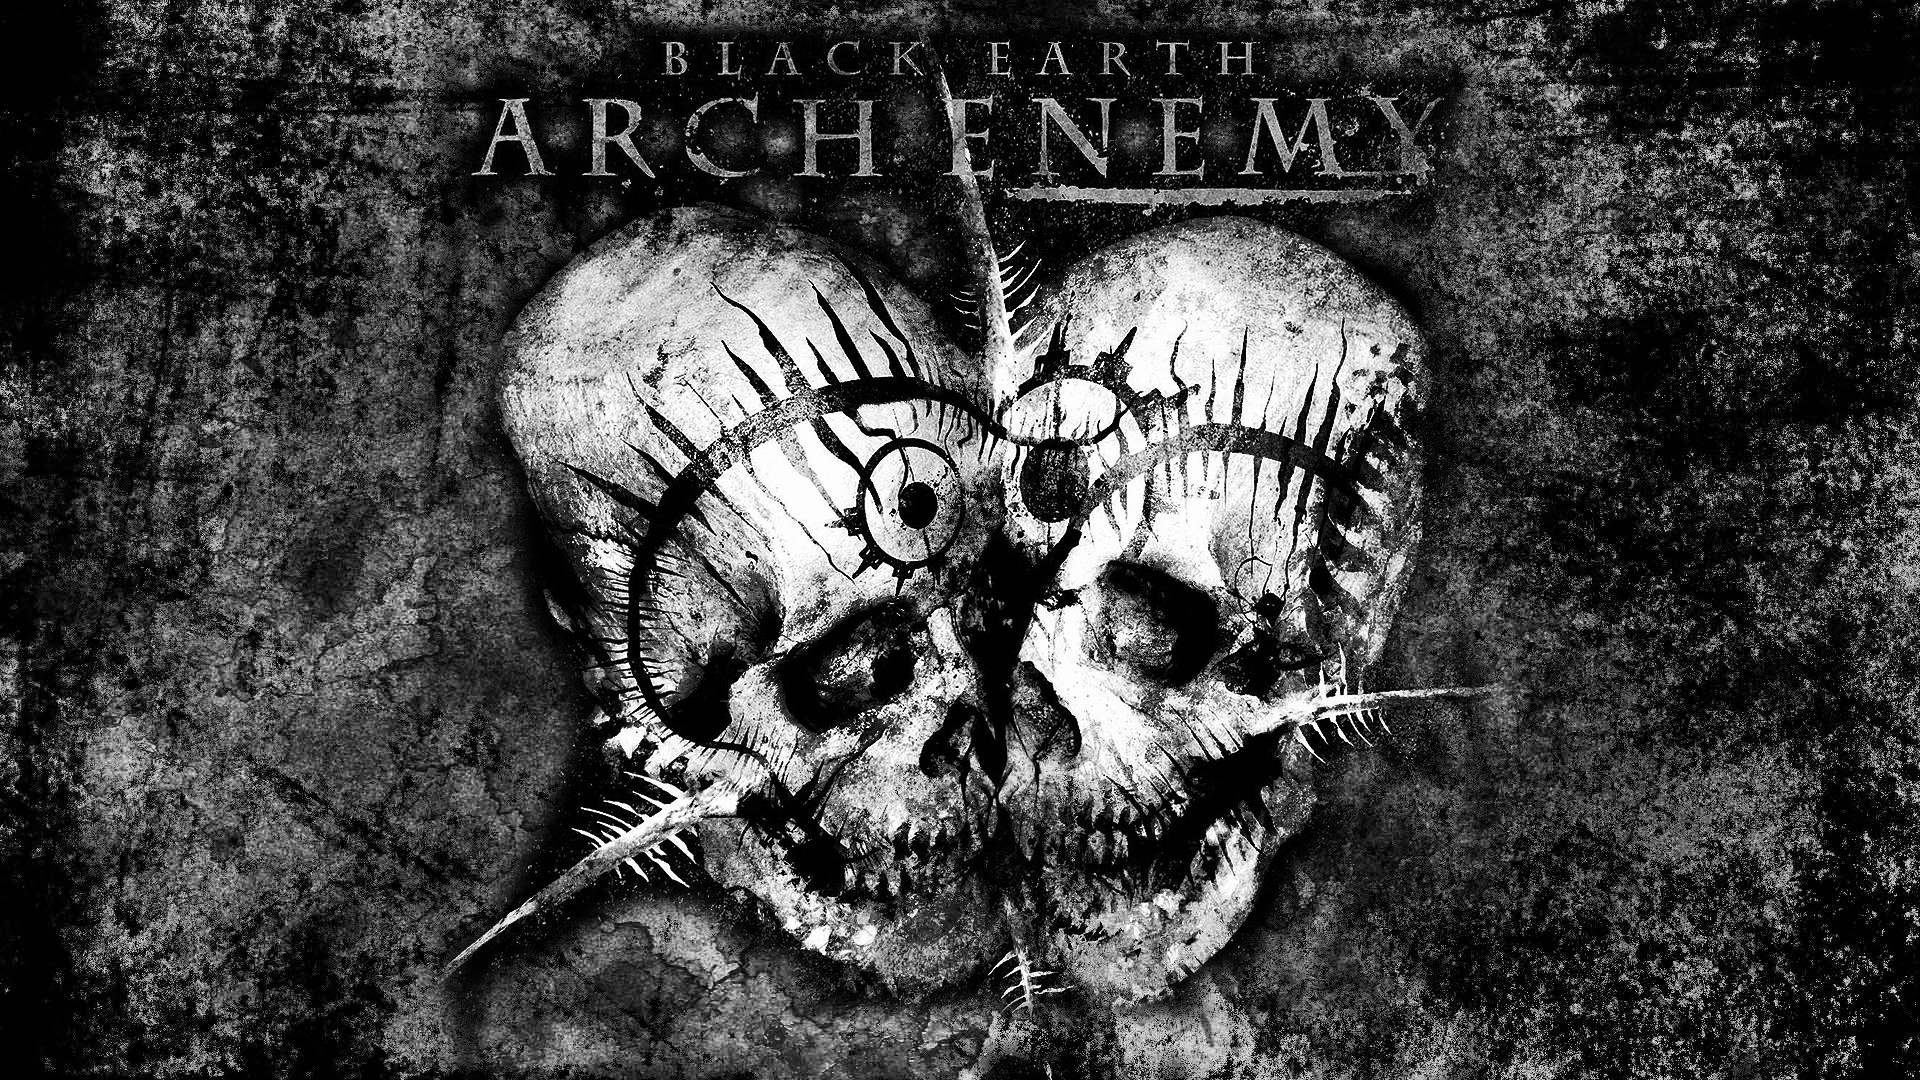 1920x1080 ... ARCH ENEMY - Black Earth 01 [WALLPAPER] by disturbedkorea